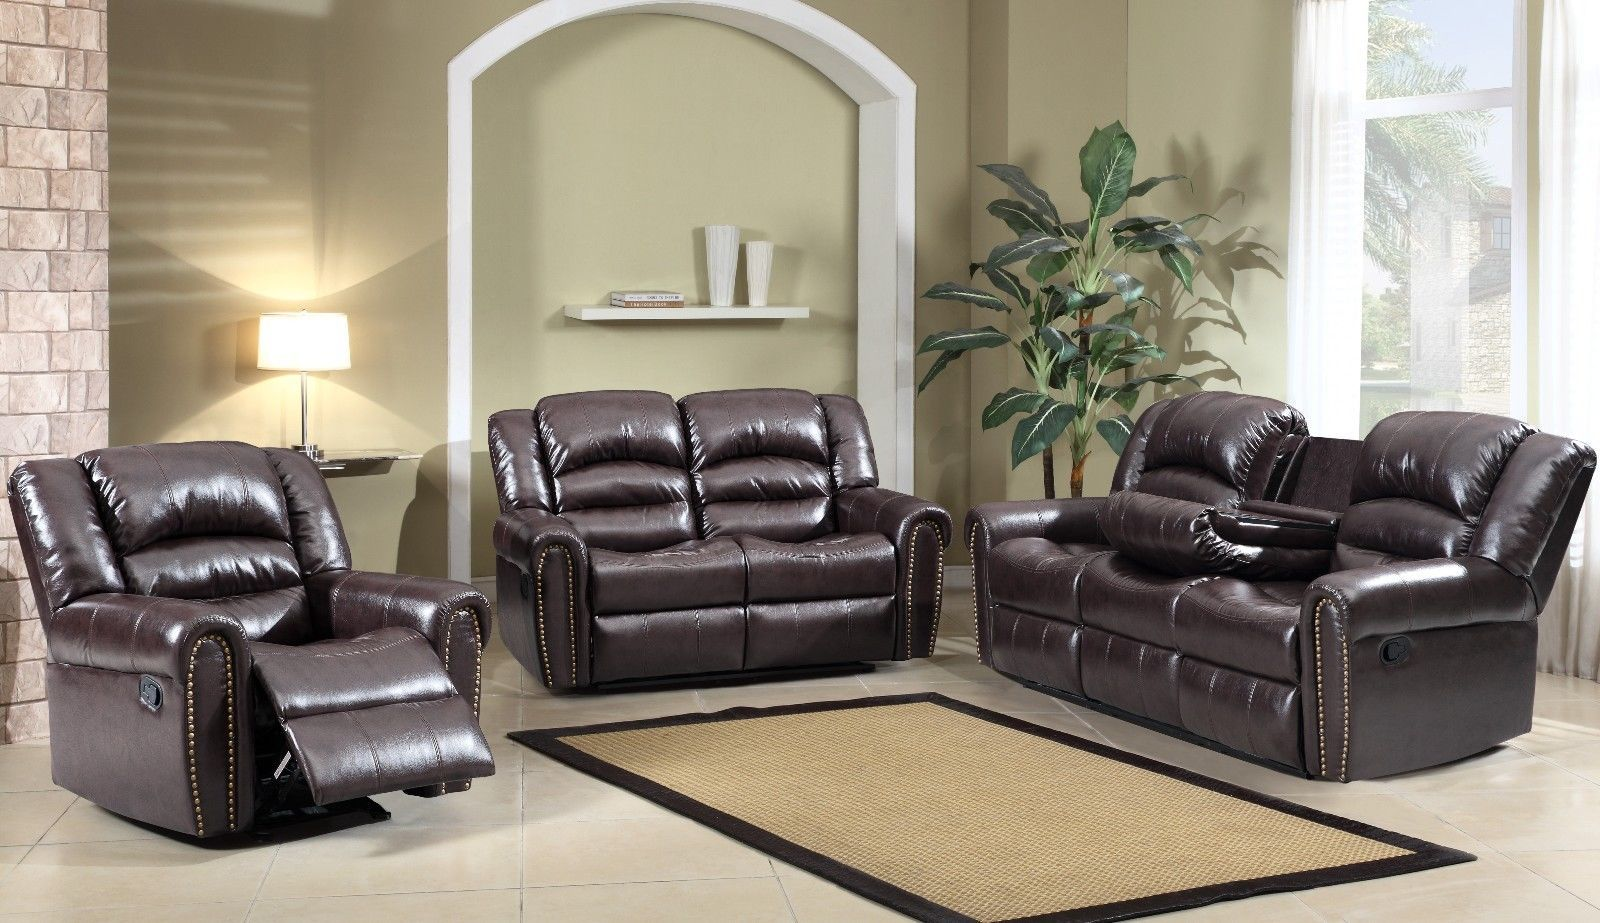 Meridian 684 Bonded Leather Living Room Sofa Set 2pc. Brown Traditional Style